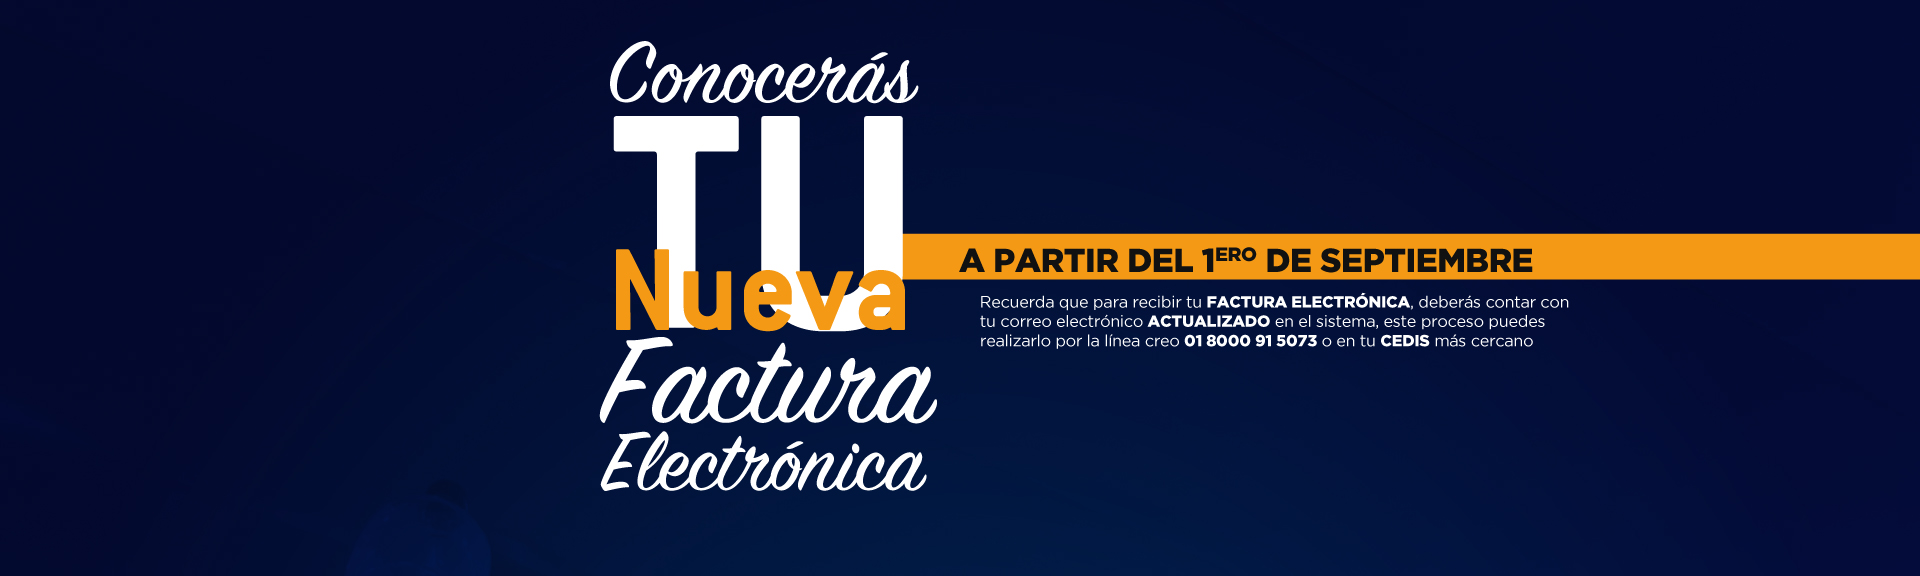 Factura_Electronica_Colombia